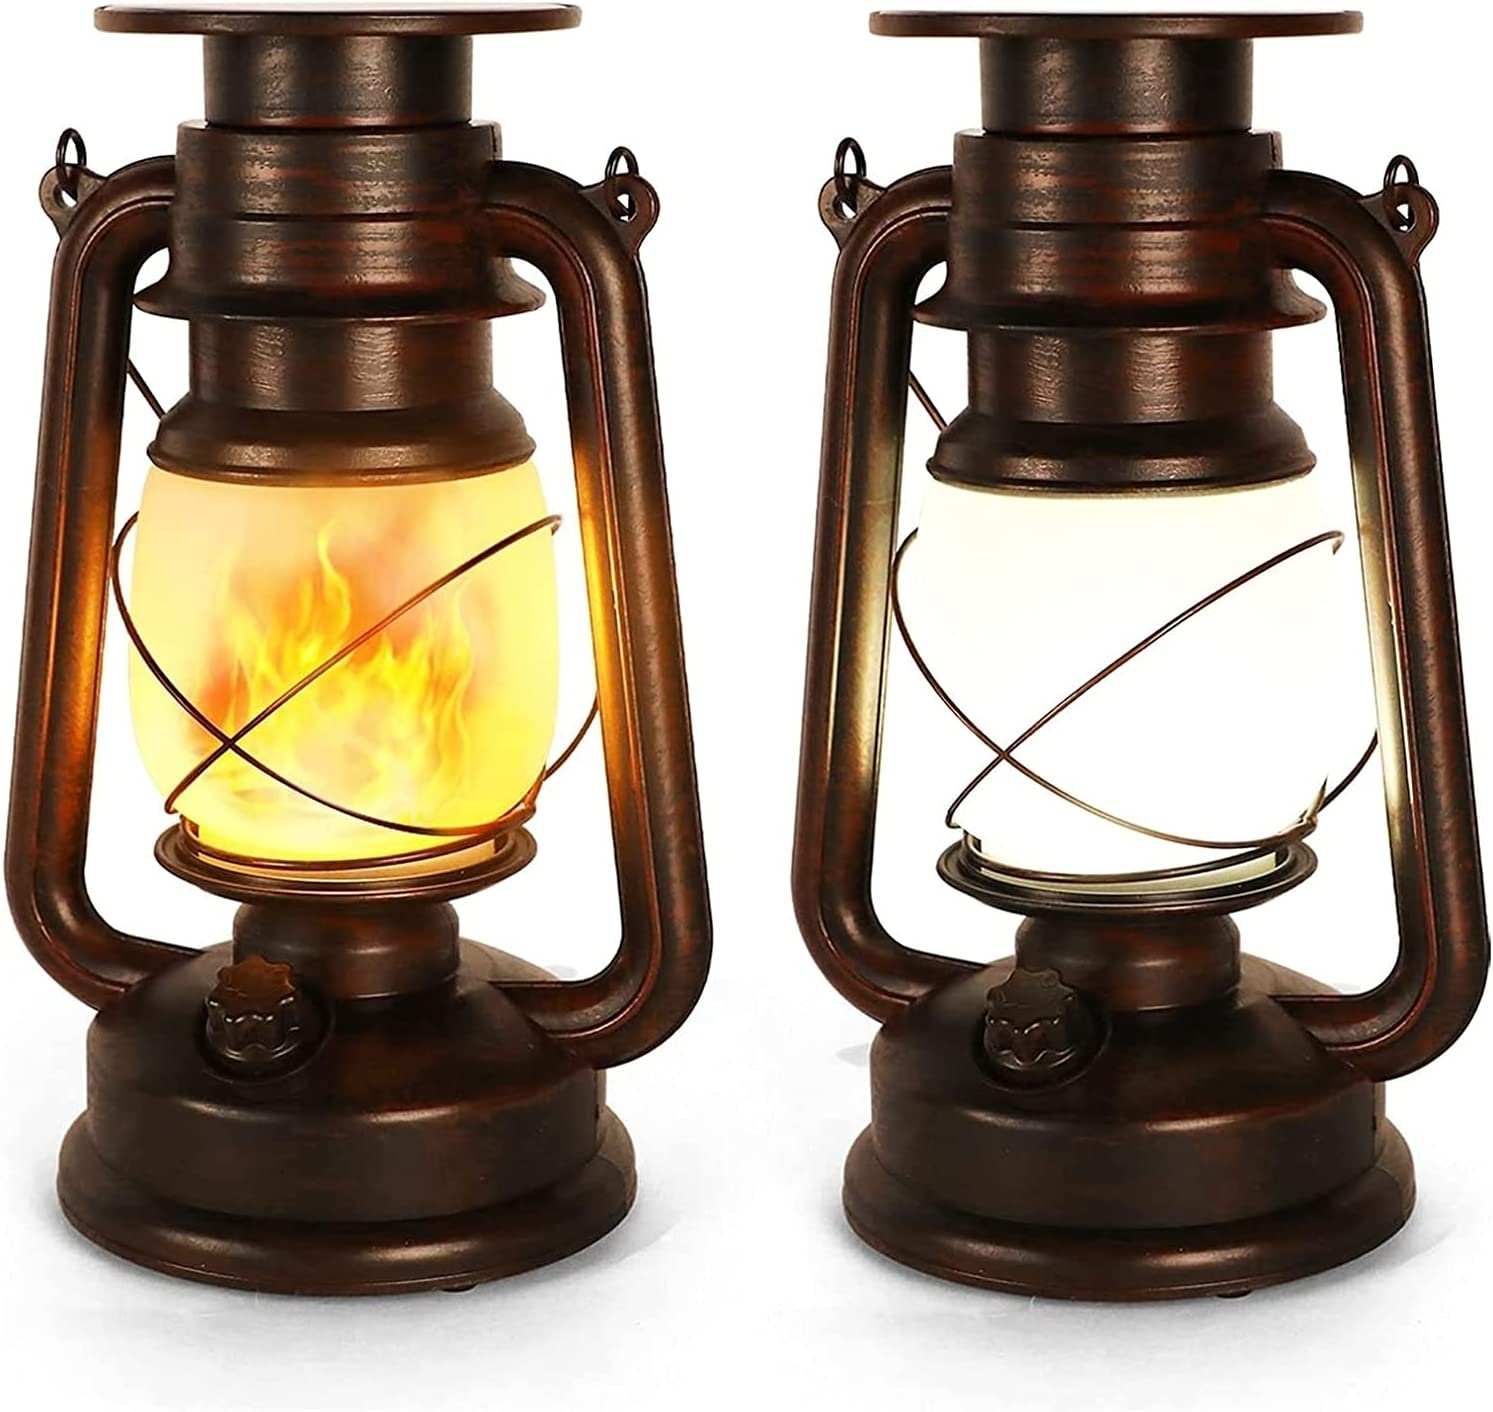 Solar Lantern Vintage LED Dancing M Max 43% OFF Flame Challenge the lowest price of Japan Two Flickering